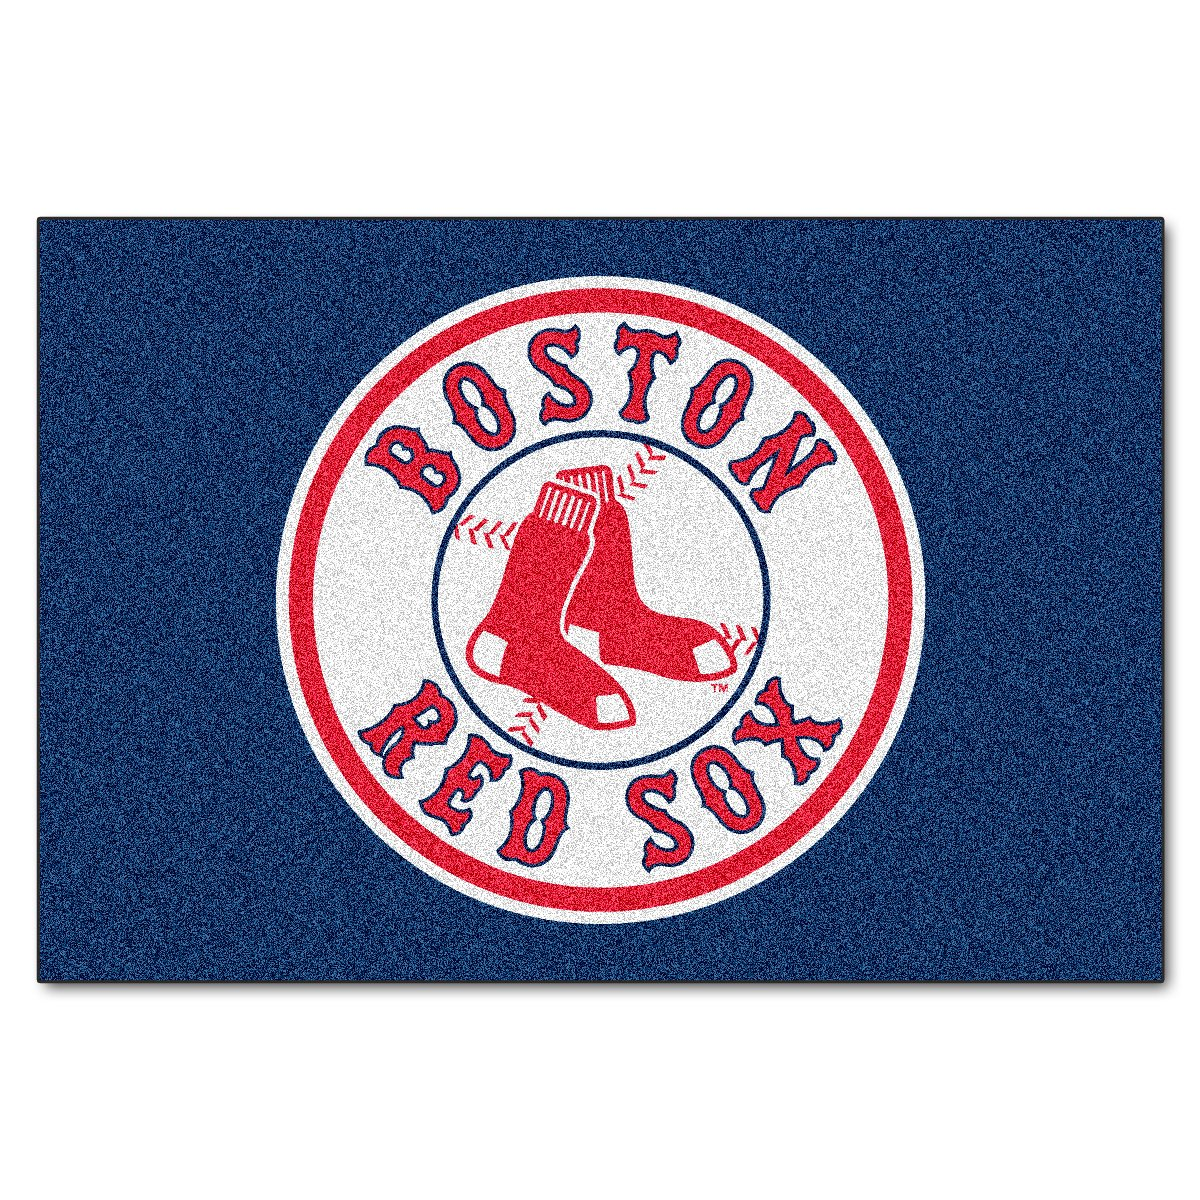 FANMATS MLB Boston Red Sox Nylon Face Starter Rug 6335